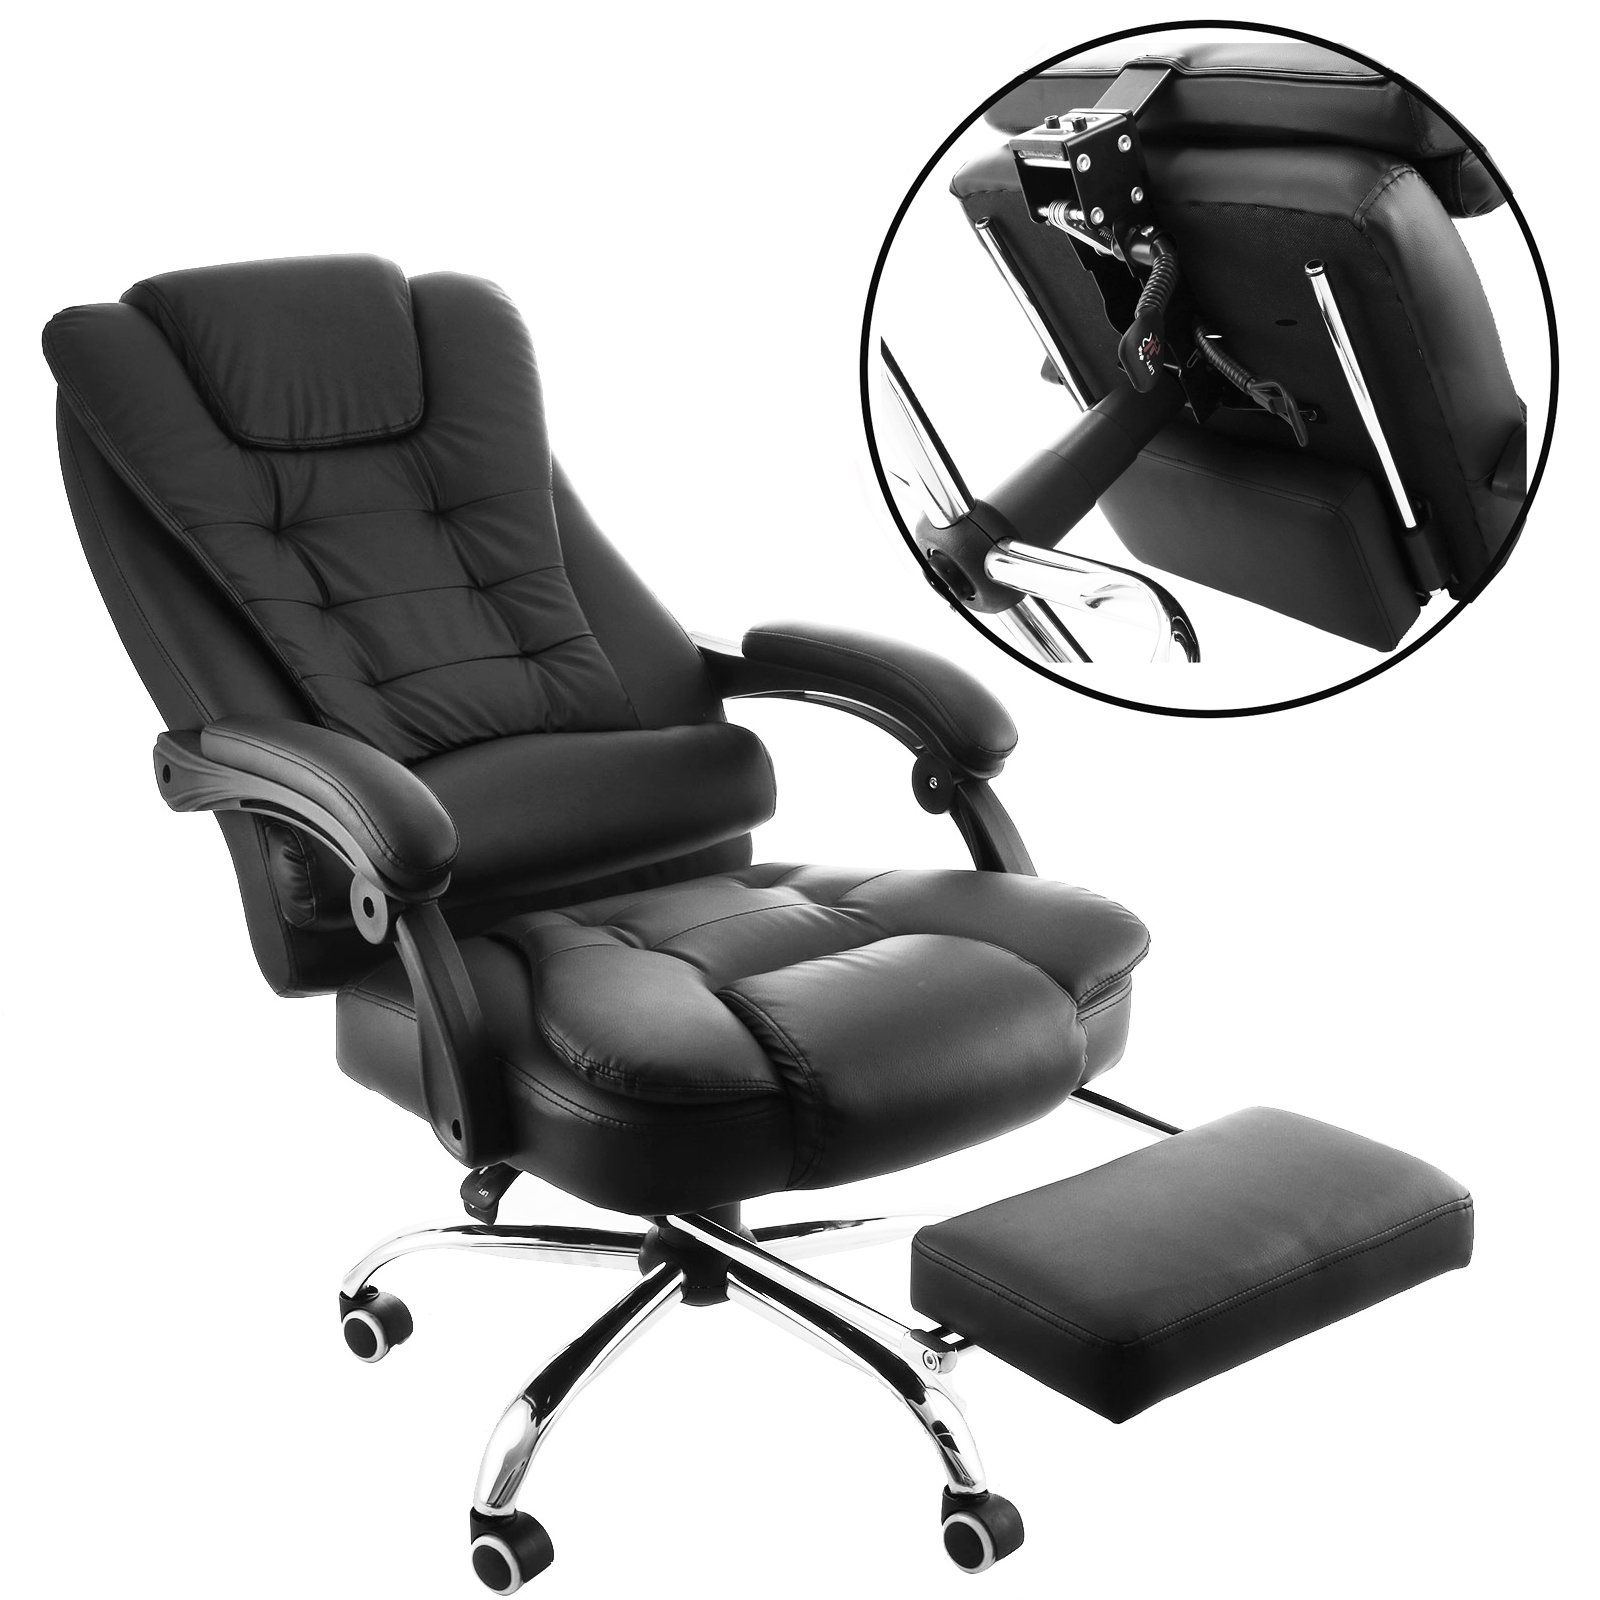 chair footrest reclining heated leather recliner massage w office